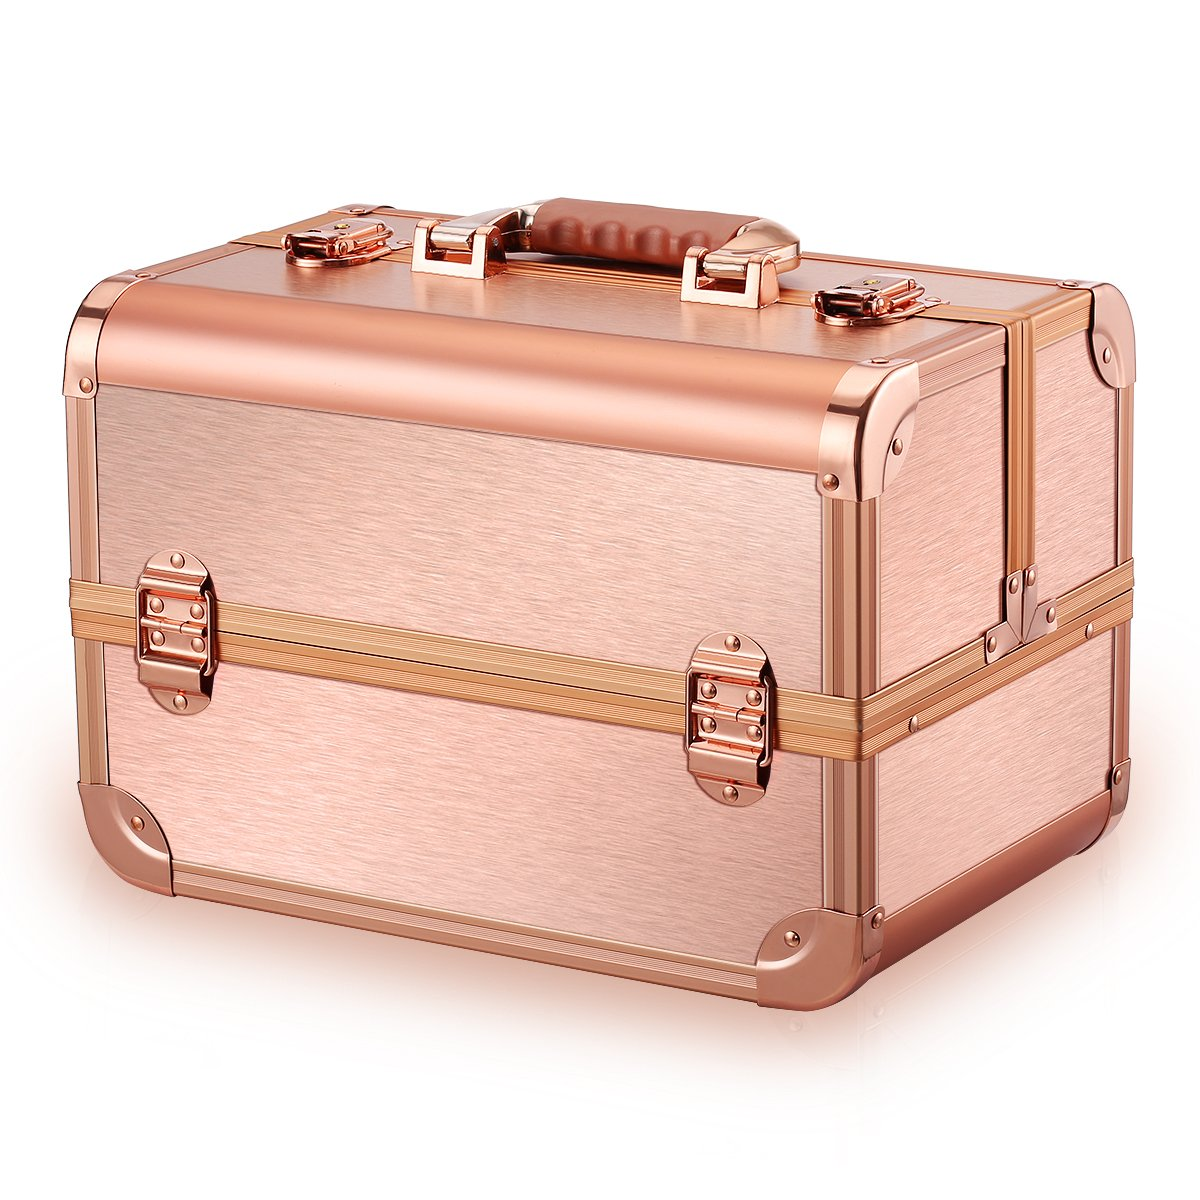 Ovonni Professional Portable Makeup Train Case, Artisit Lockable Aluminum Cosmetic Organizer Storage Box with Adjustable Dividers 4 Trays,Rose Gold